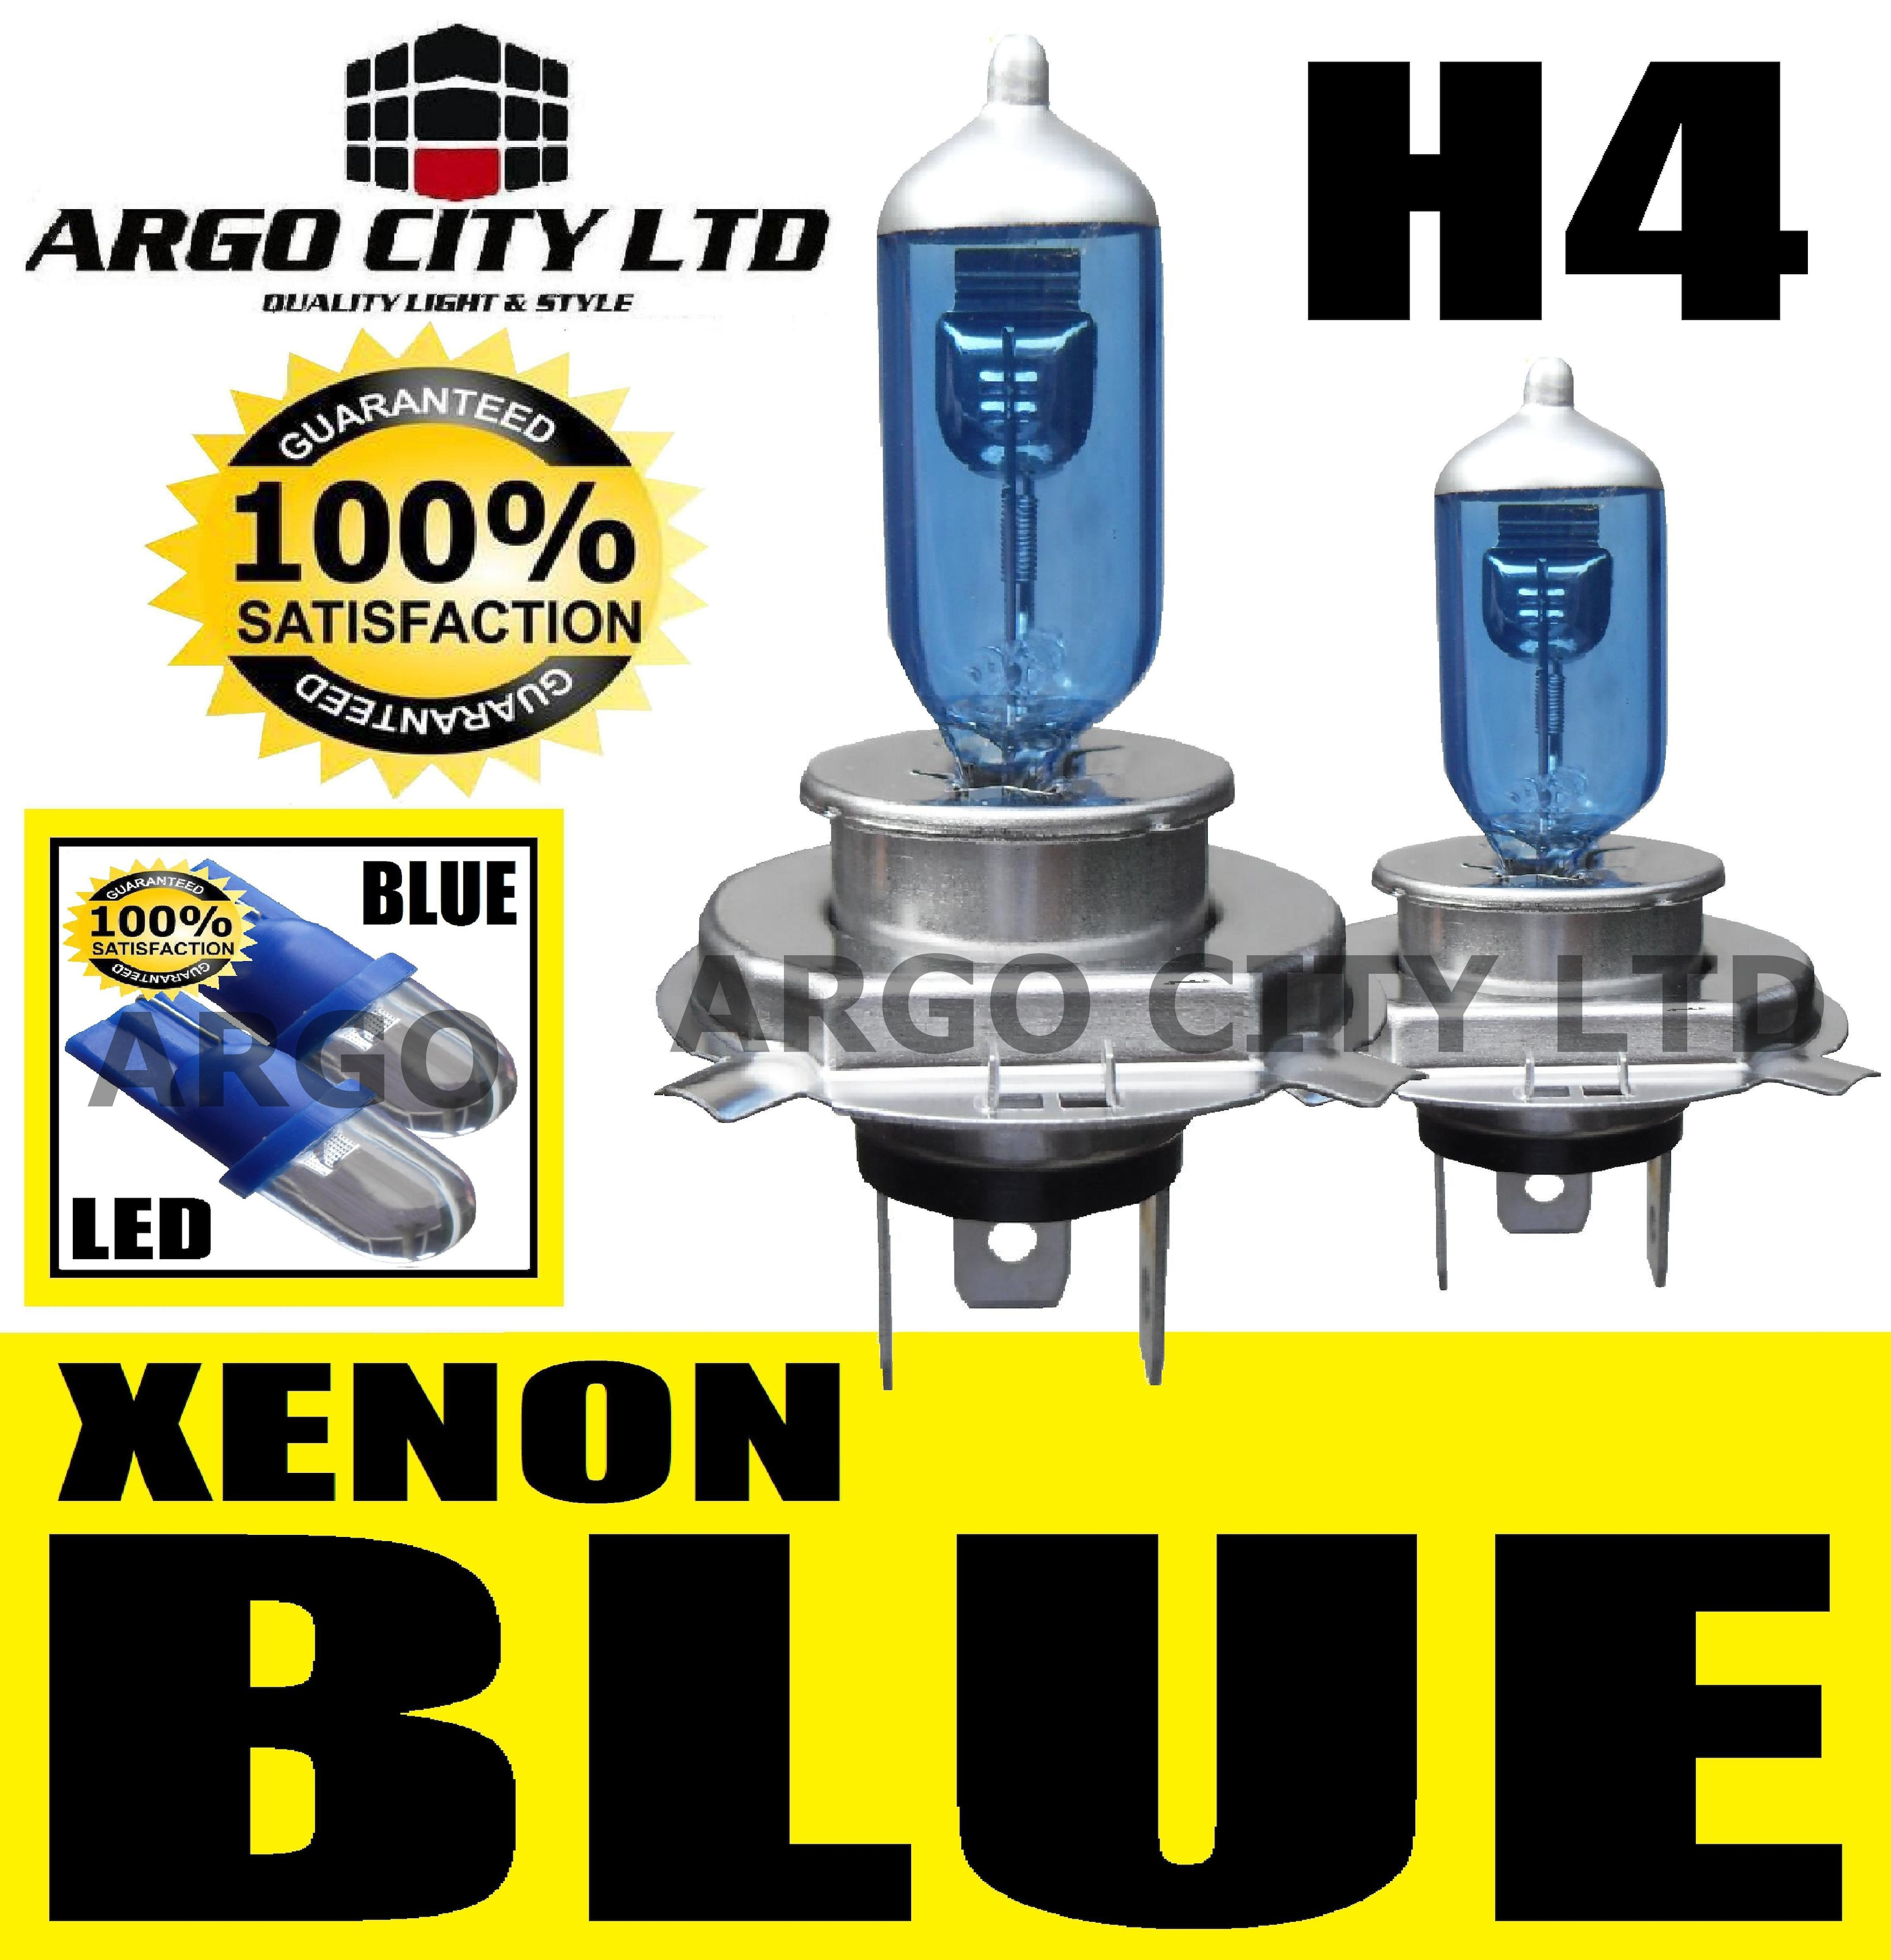 H4 XENON ICE BLUE 55W 472 HEADLIGHT BULBS HARLEY DAVIDSON FXSTC 1340 Custom